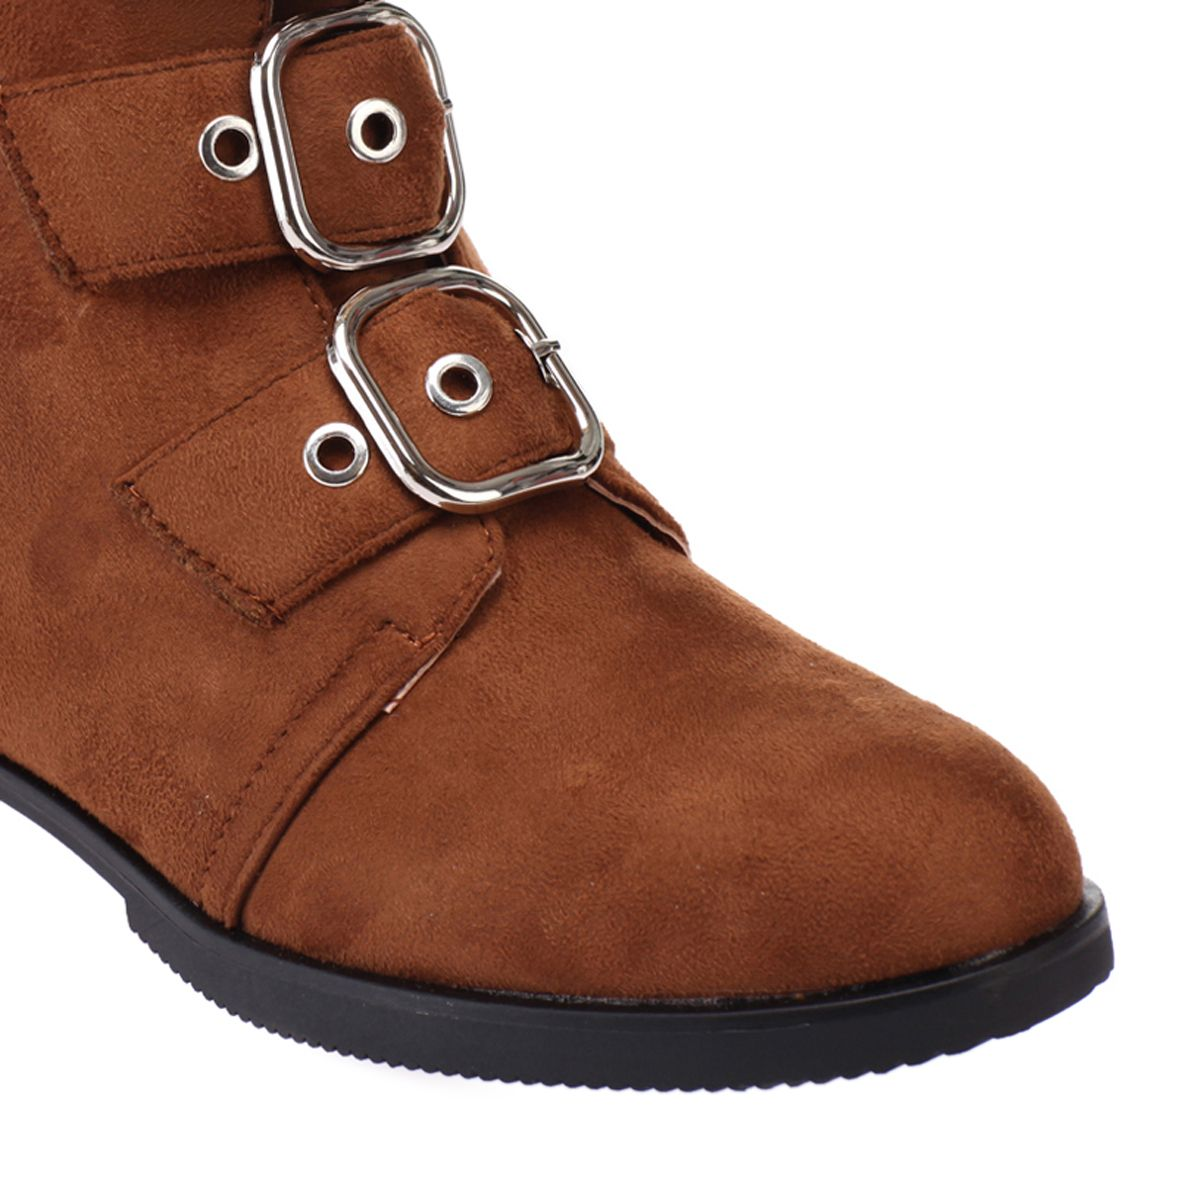 Bottines camel en simili daim à boucles oversize